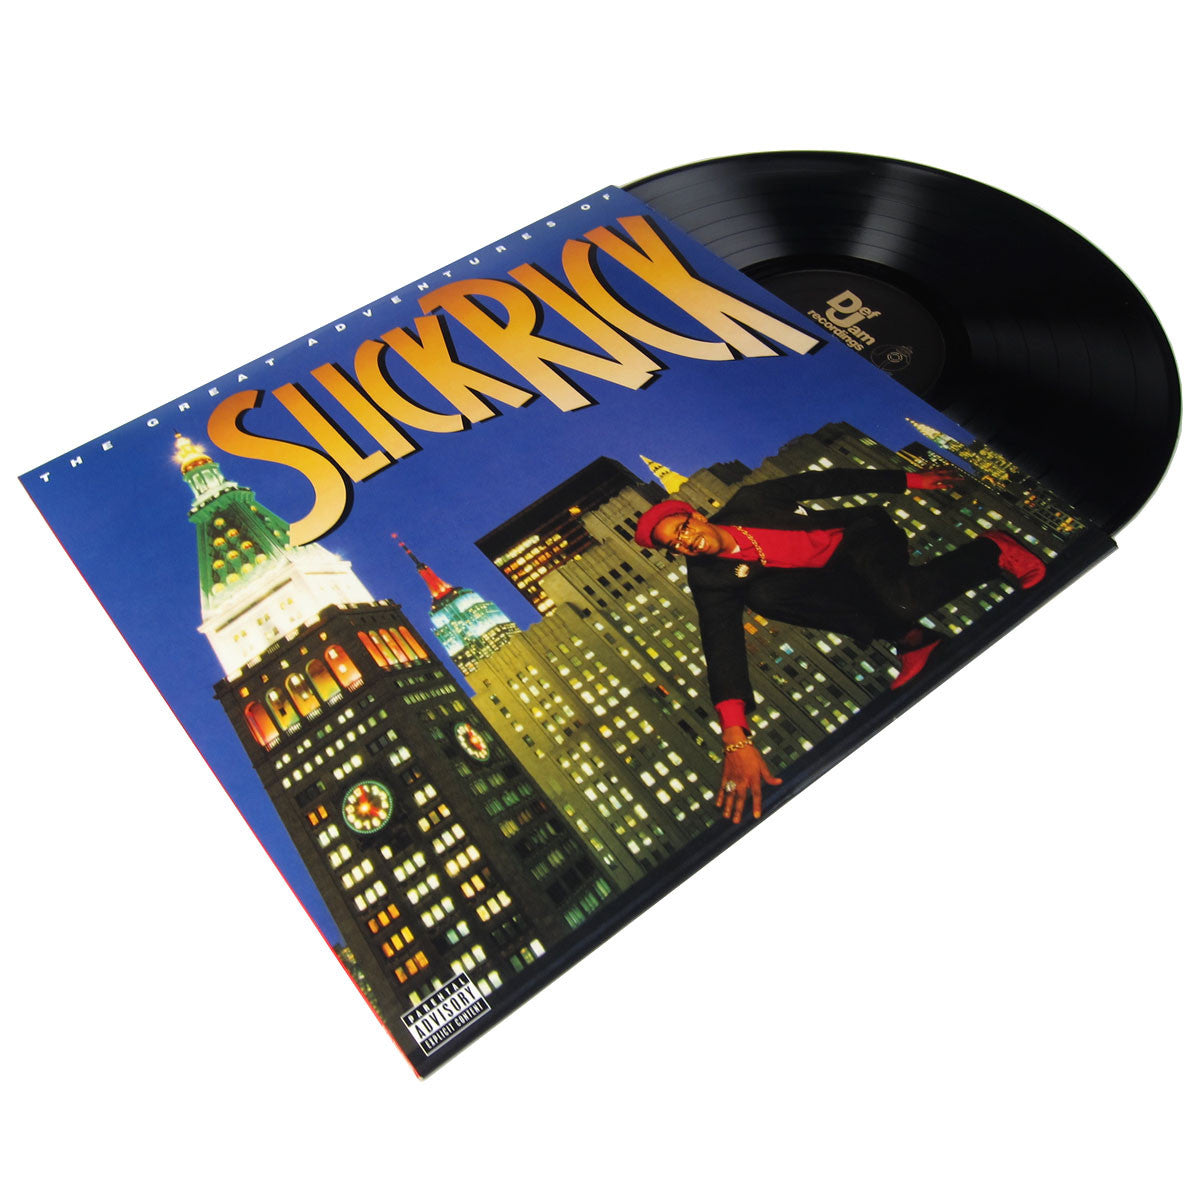 Slick Rick The Great Adventures Of Slick Rick Vinyl Lp